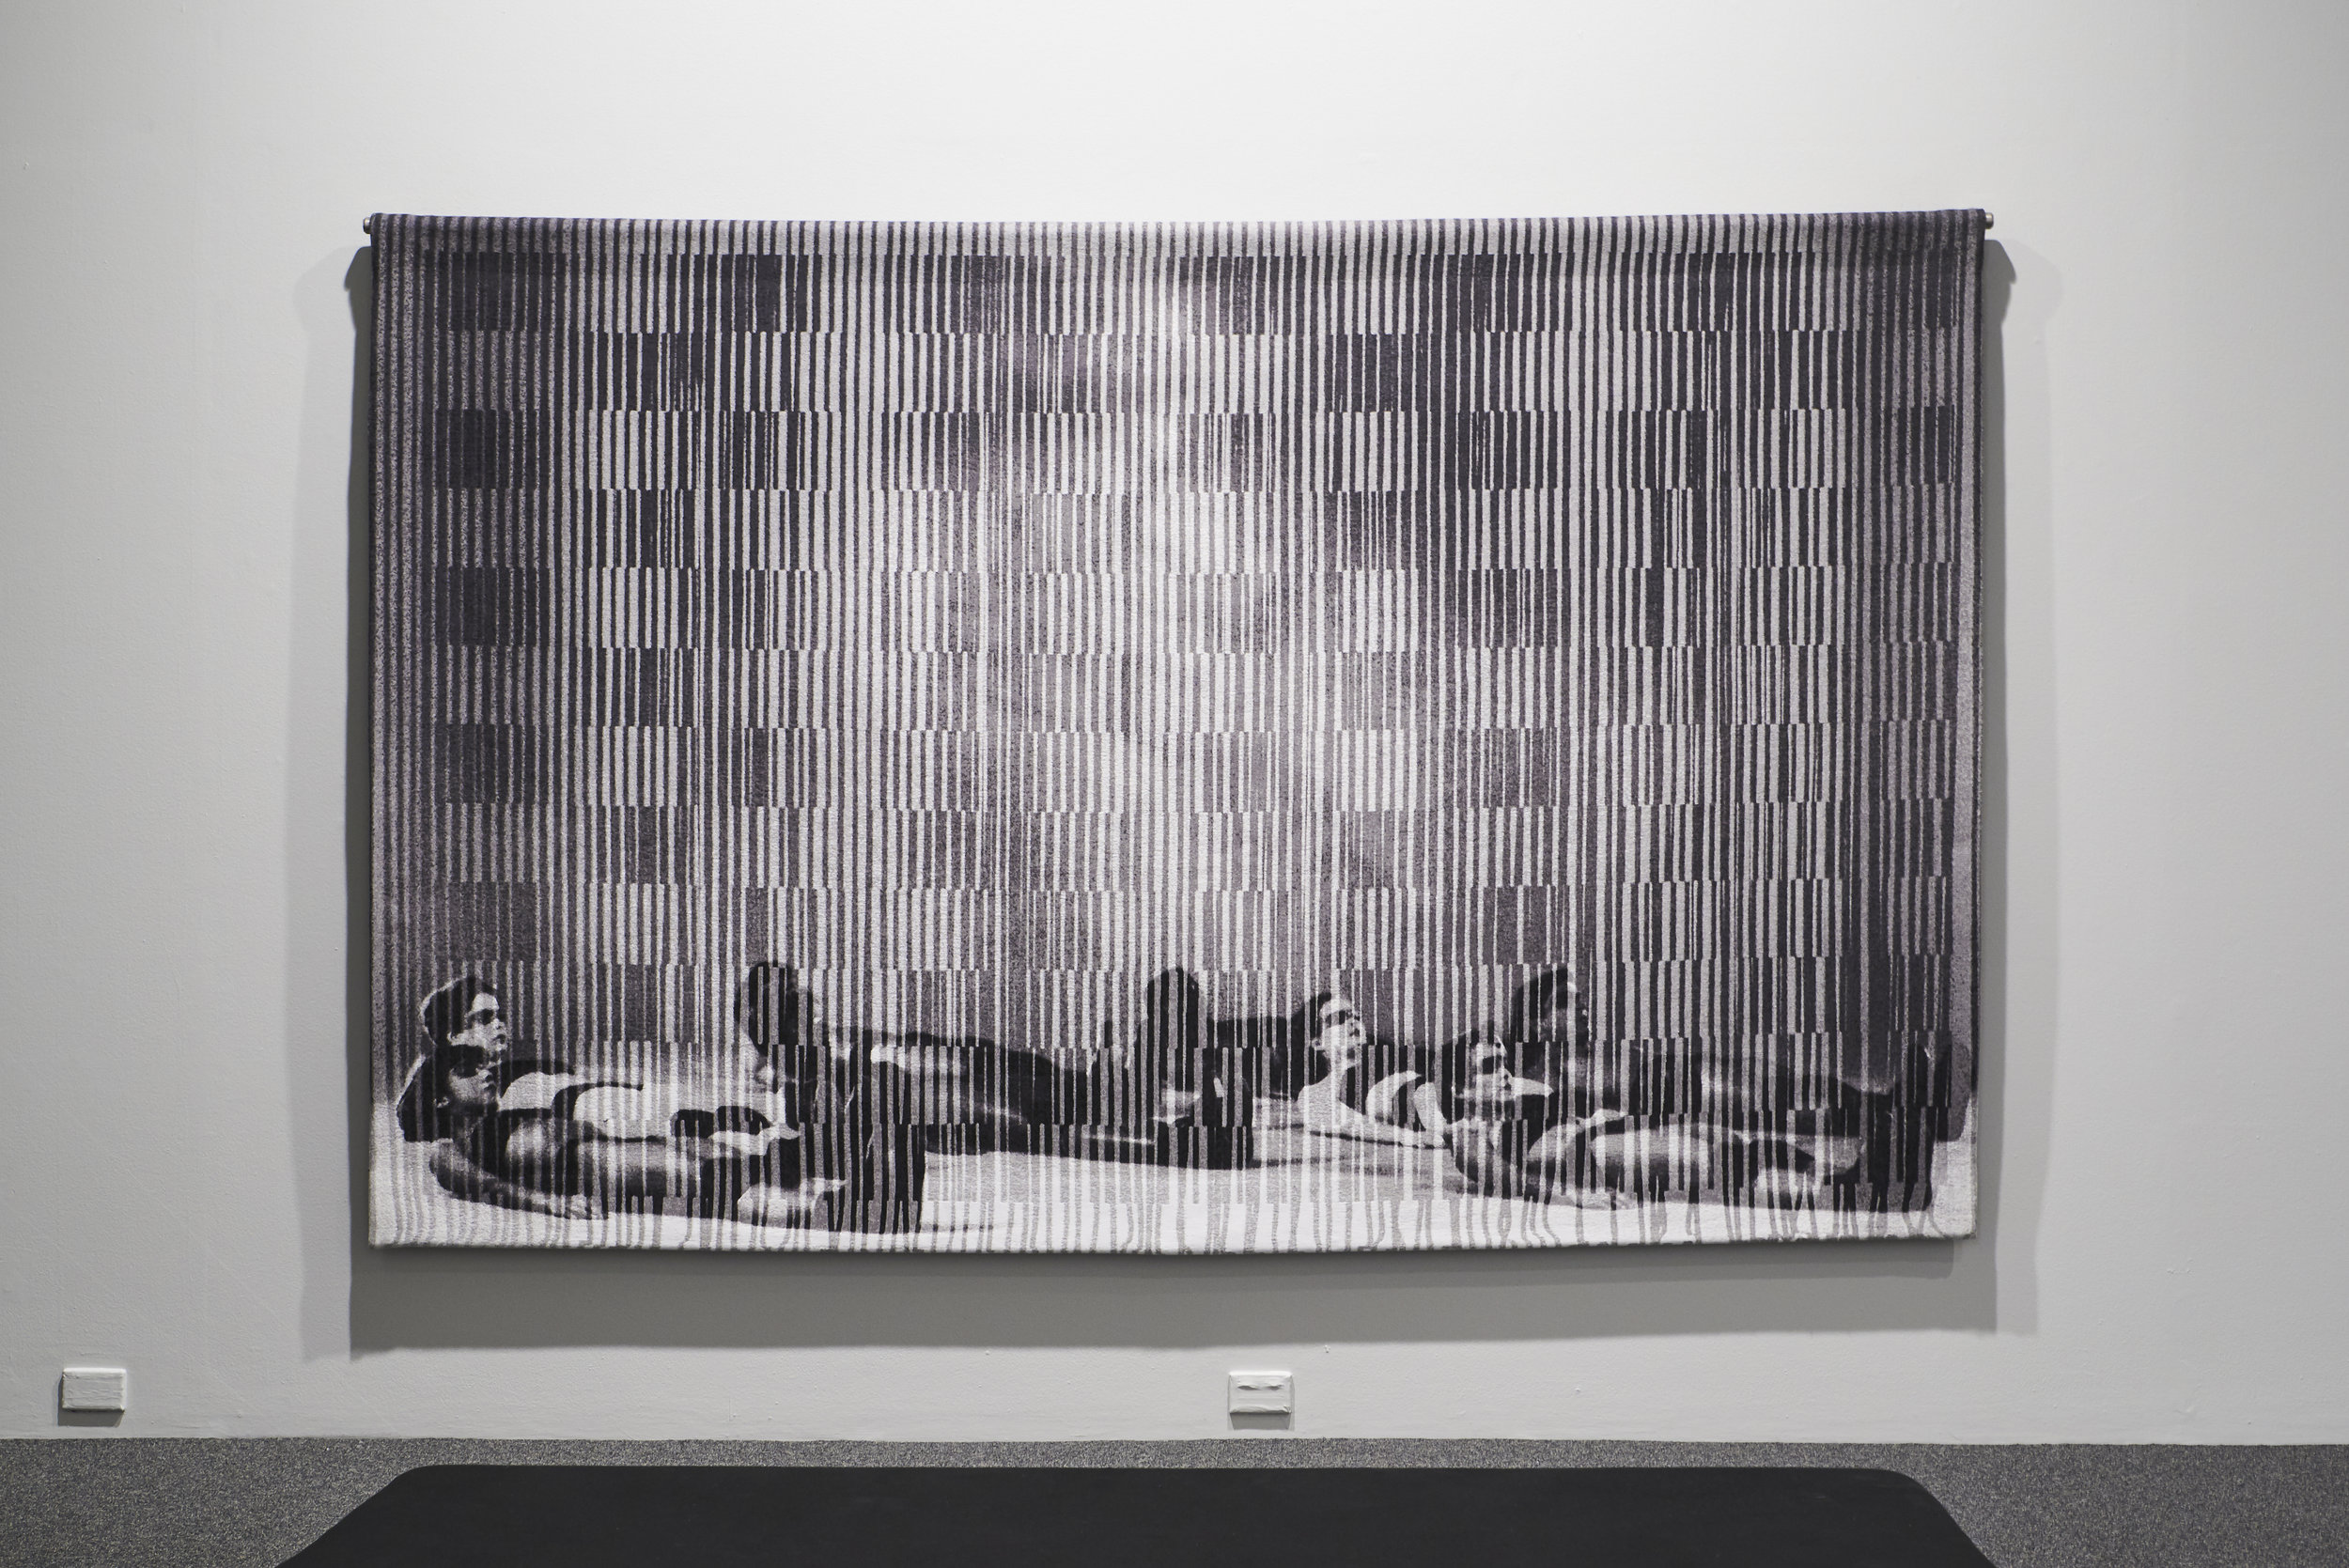 David Noonan,  Untitled , 2019, installation view, 'A Dark and Quiet Place', Fremantle Arts Centre, 2019; Jacquard tapestry, stainless steel hanging system, 190 x 300cm; photo: Rebecca Mansell